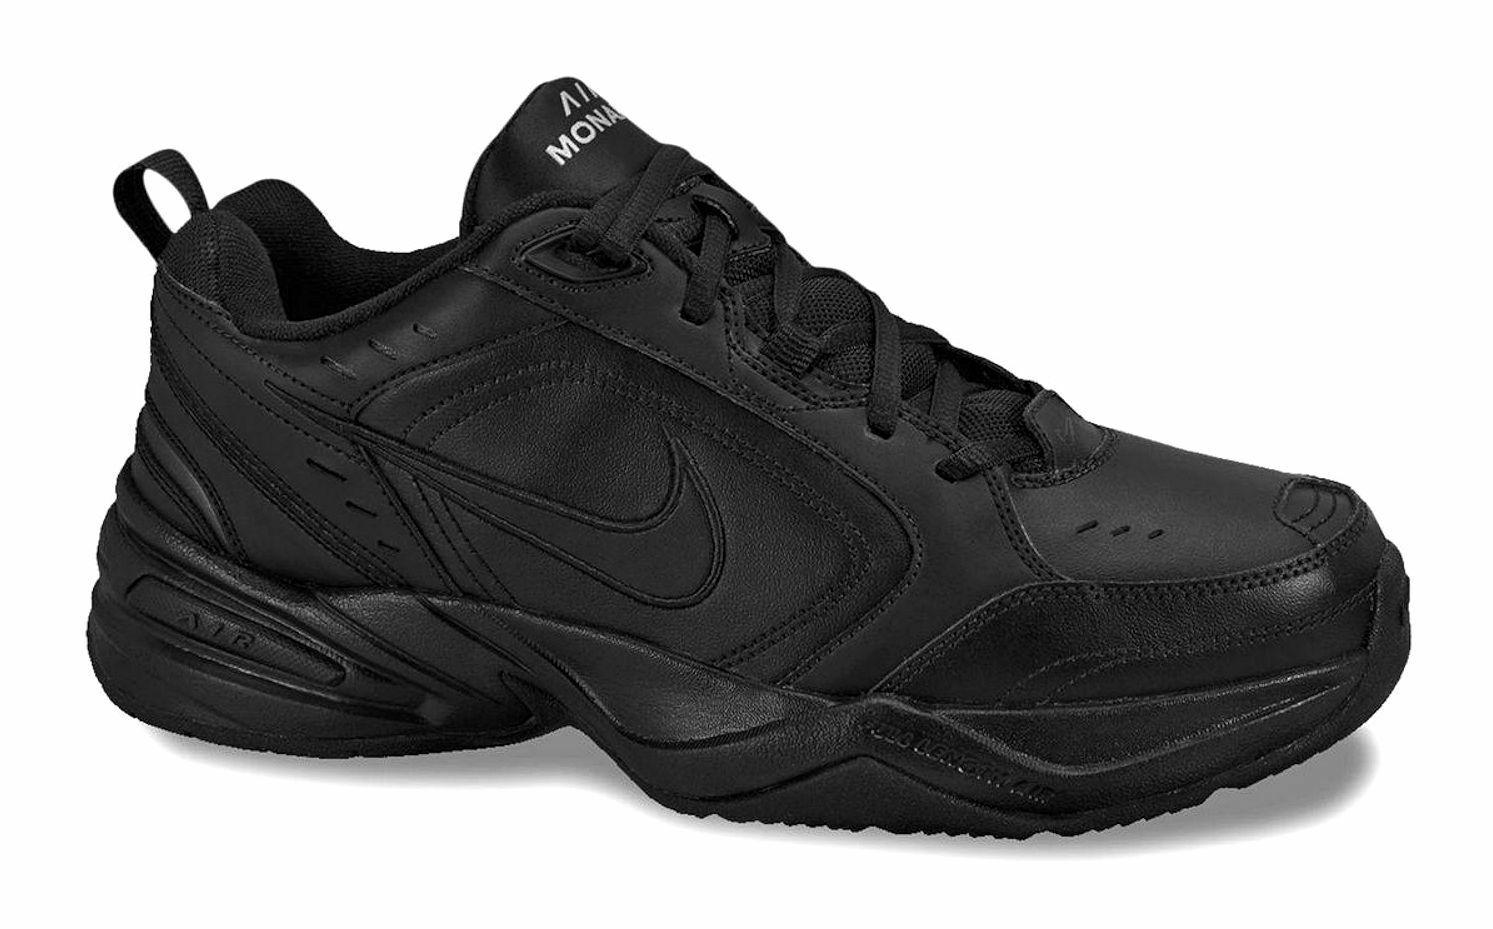 Baskets homme IV Nike Tennis noir Training Monarch noir Air Tennis vxHqOU